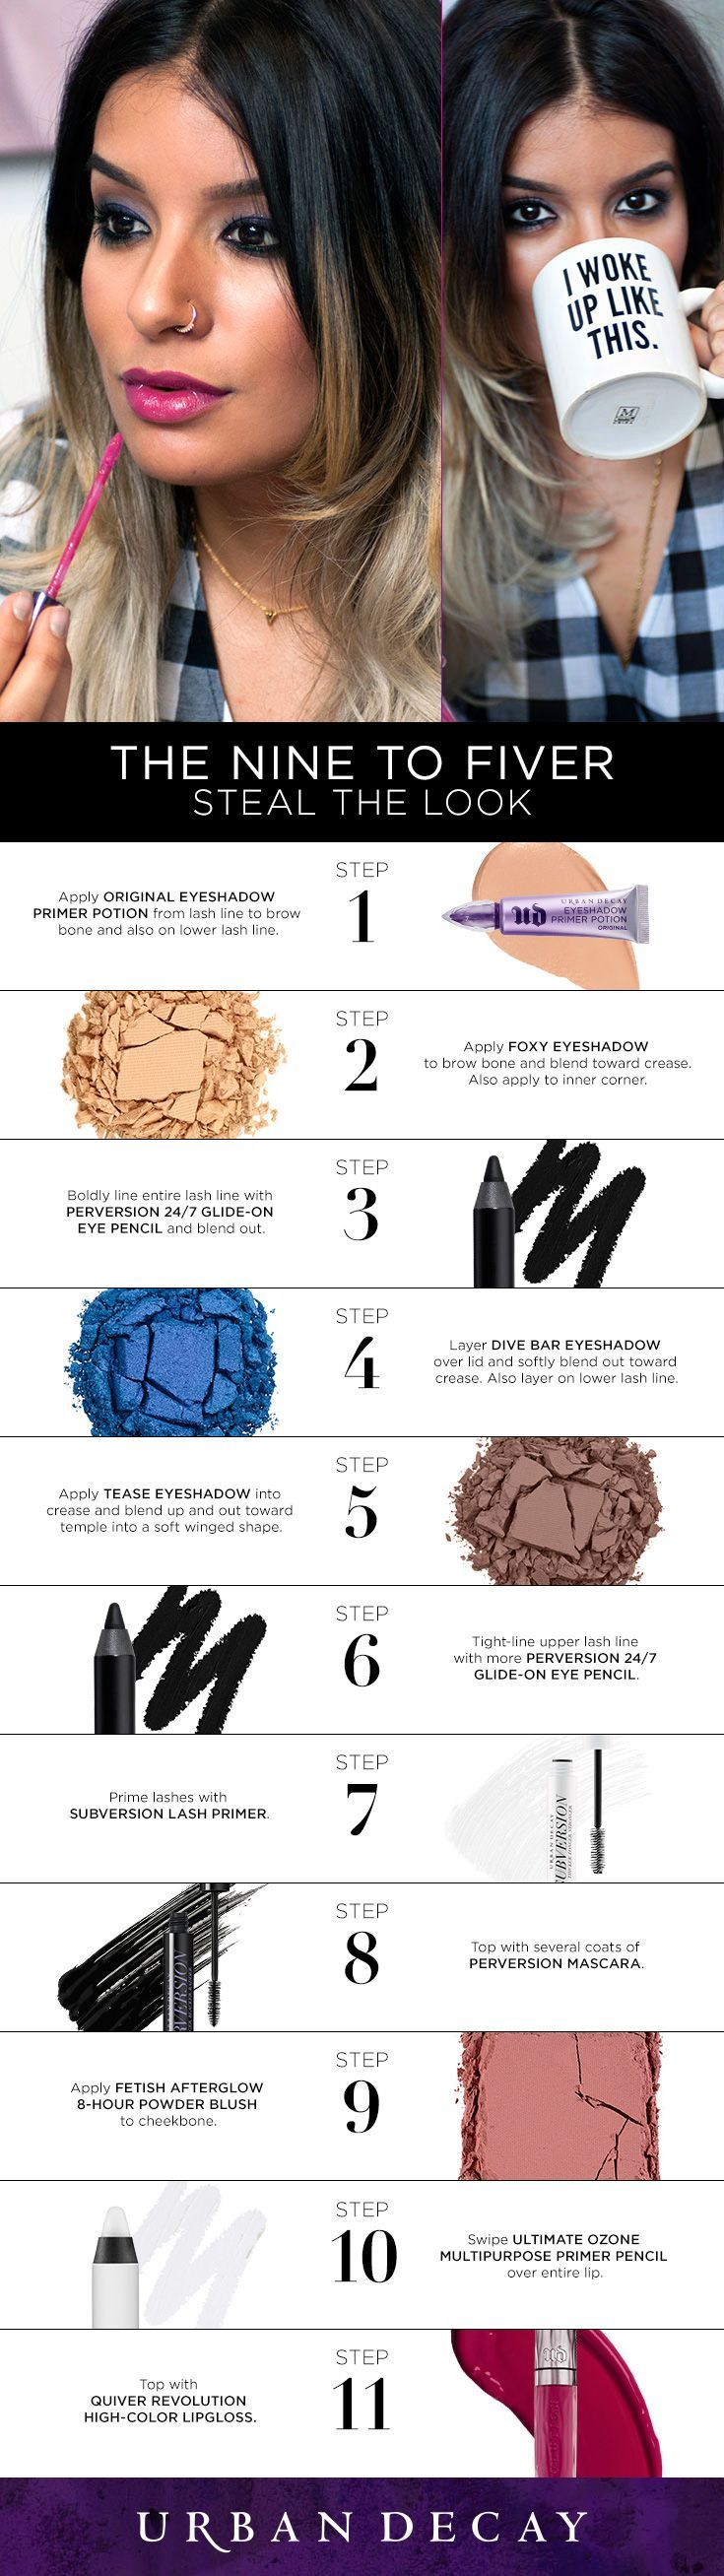 """The Nine to Fiver - """"My go to signature """"look"""" for the office is a smoky eye with a pop of color. I love layering Dive Bar with Perversion 24/7 Eye Pencil, which transforms the color to an amazing violet shift (and looks incredible against a tan)."""""""